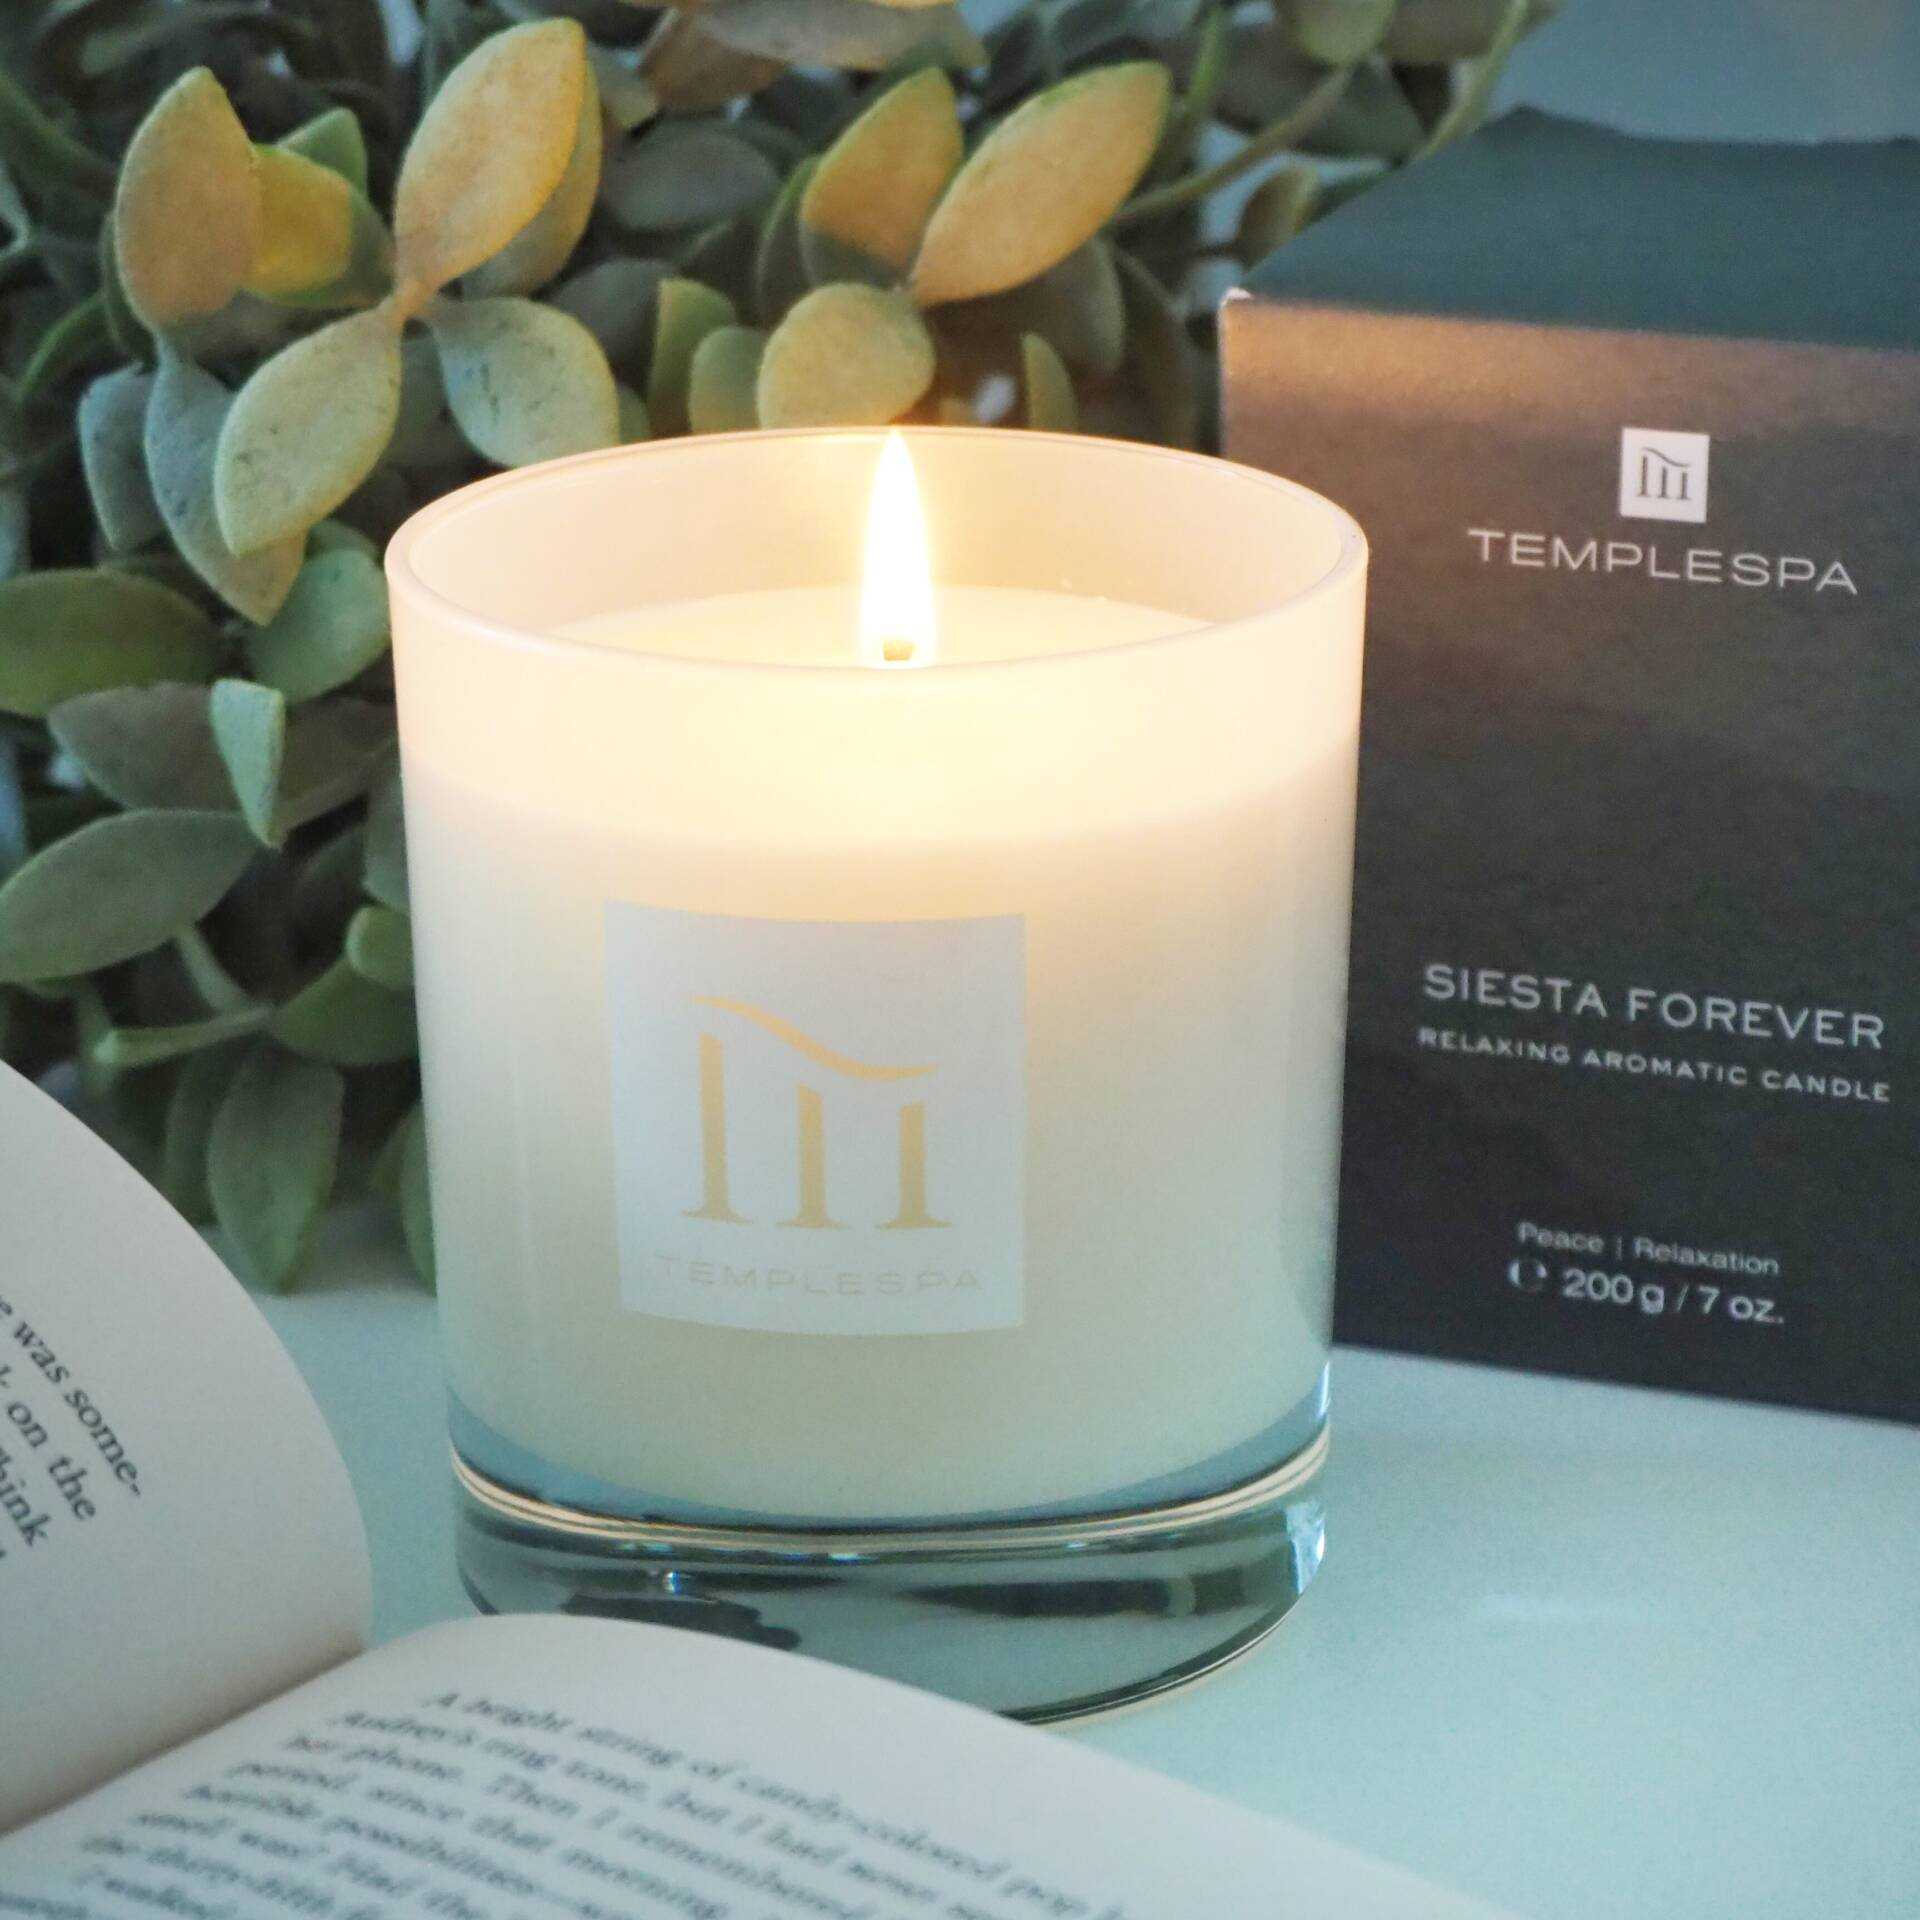 temple-spa-siesta-forever-candle